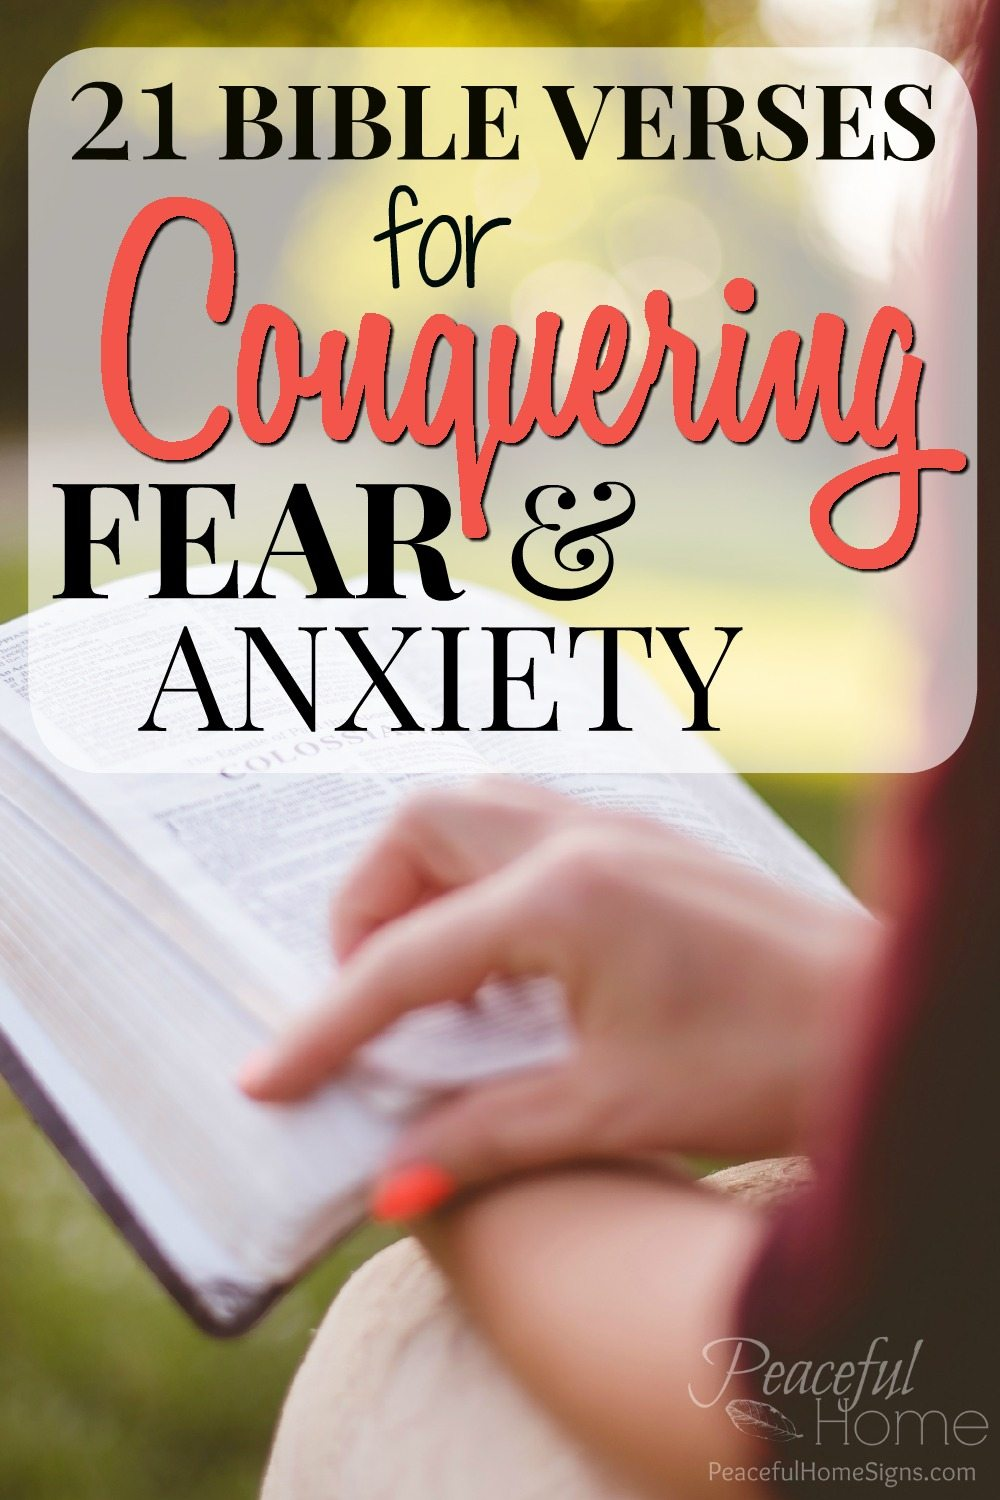 21 Bible Verses for Conquering Fear and Anxiety - Peaceful Home